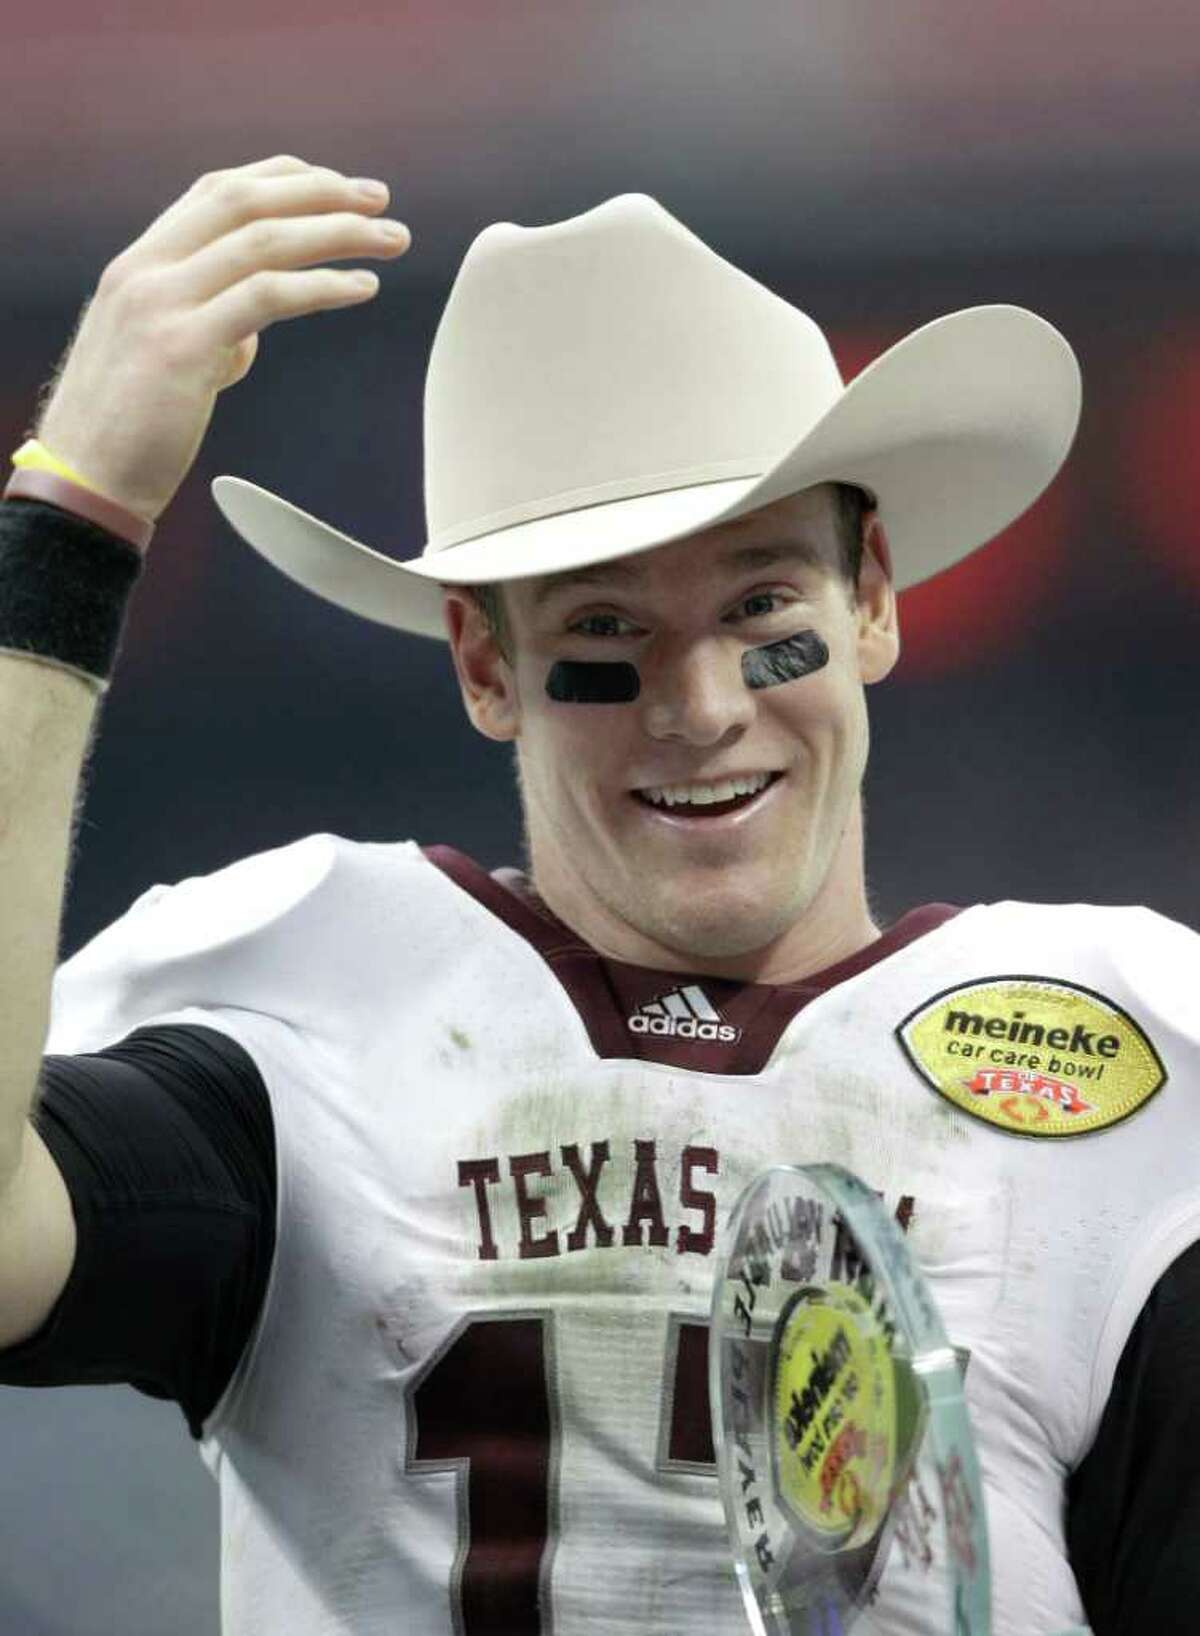 Ryan Tannehill, who likely will be a first-round pick in the NFL draft, started just 19 games at QB at A&M.